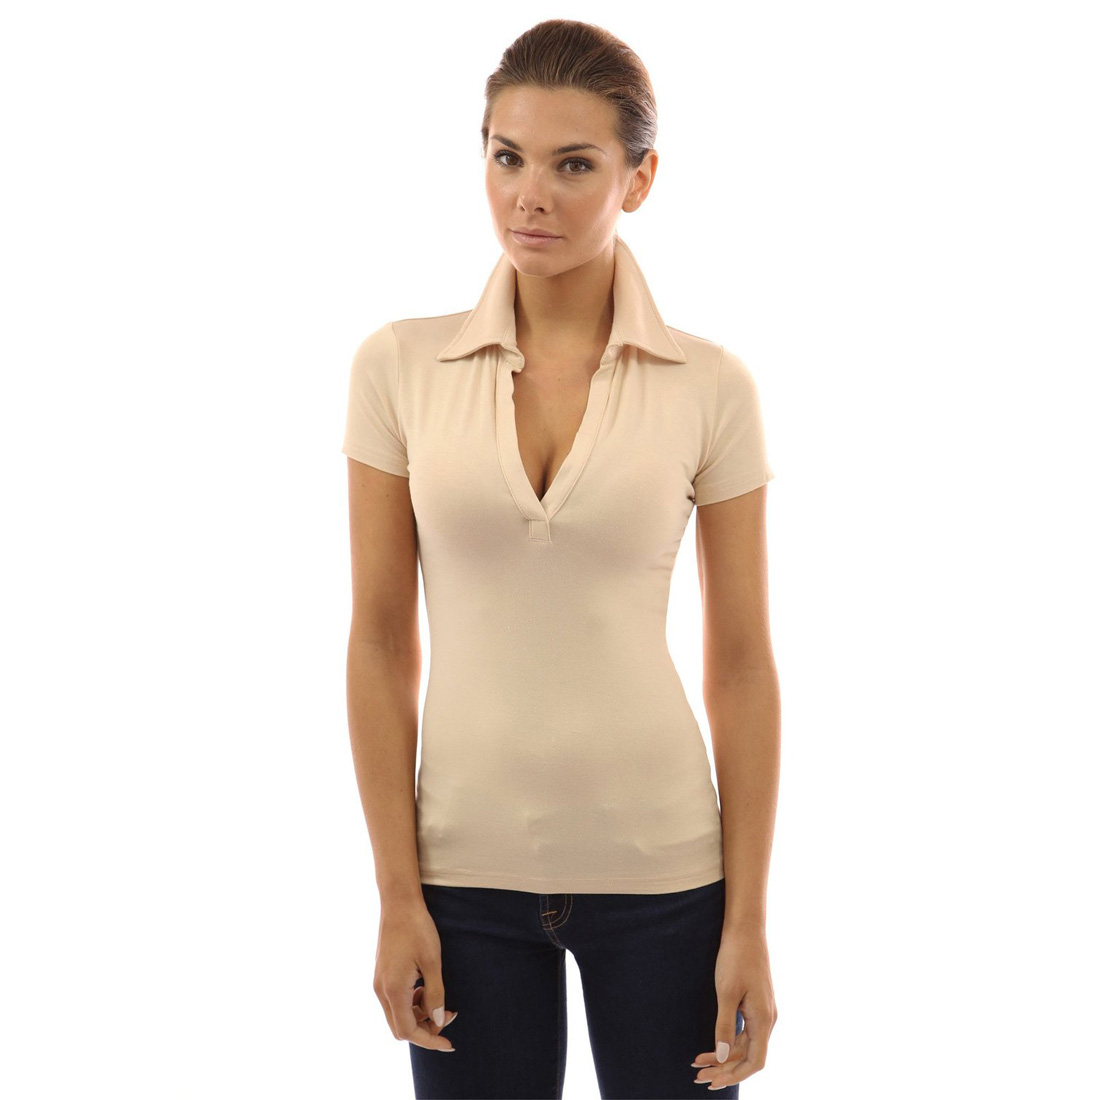 Find great deals on eBay for womens collar tops. Shop with confidence.